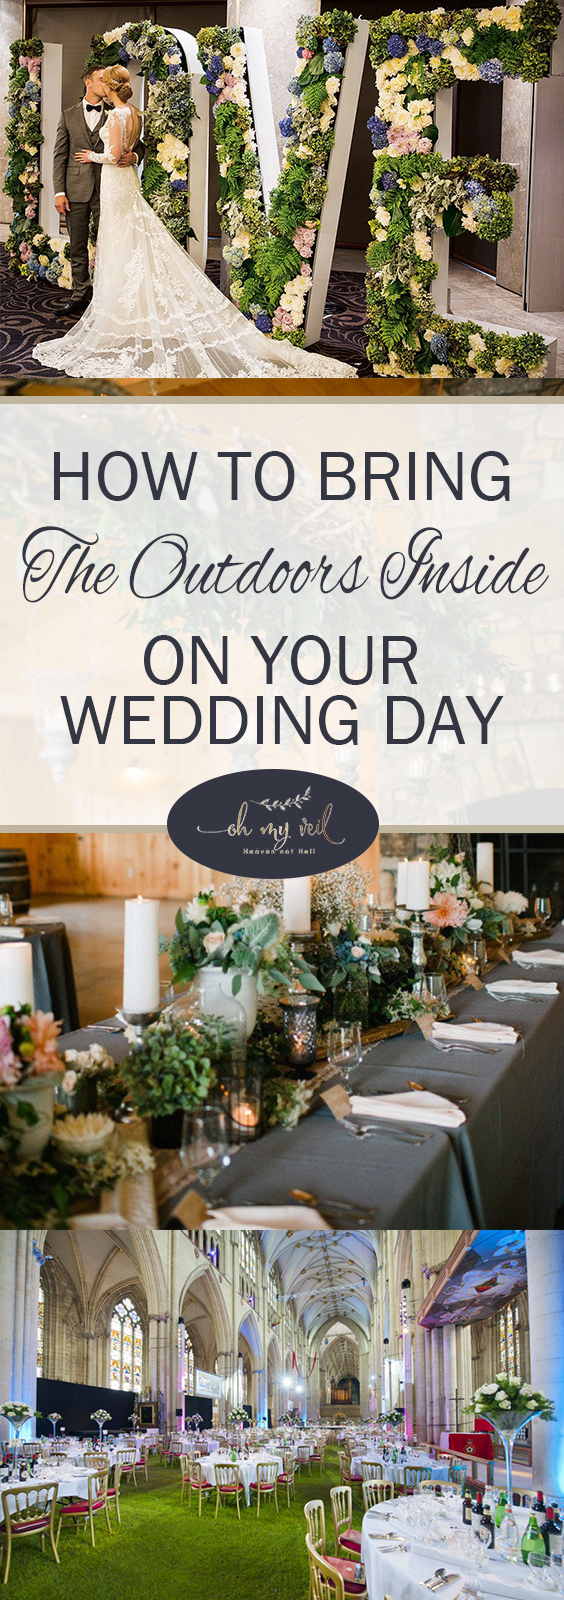 How to bring the outdoors inside on your wedding day oh my veil wedding decor outdoor weddings outdoor wedding decor how to decorate for outdoor weddings junglespirit Choice Image